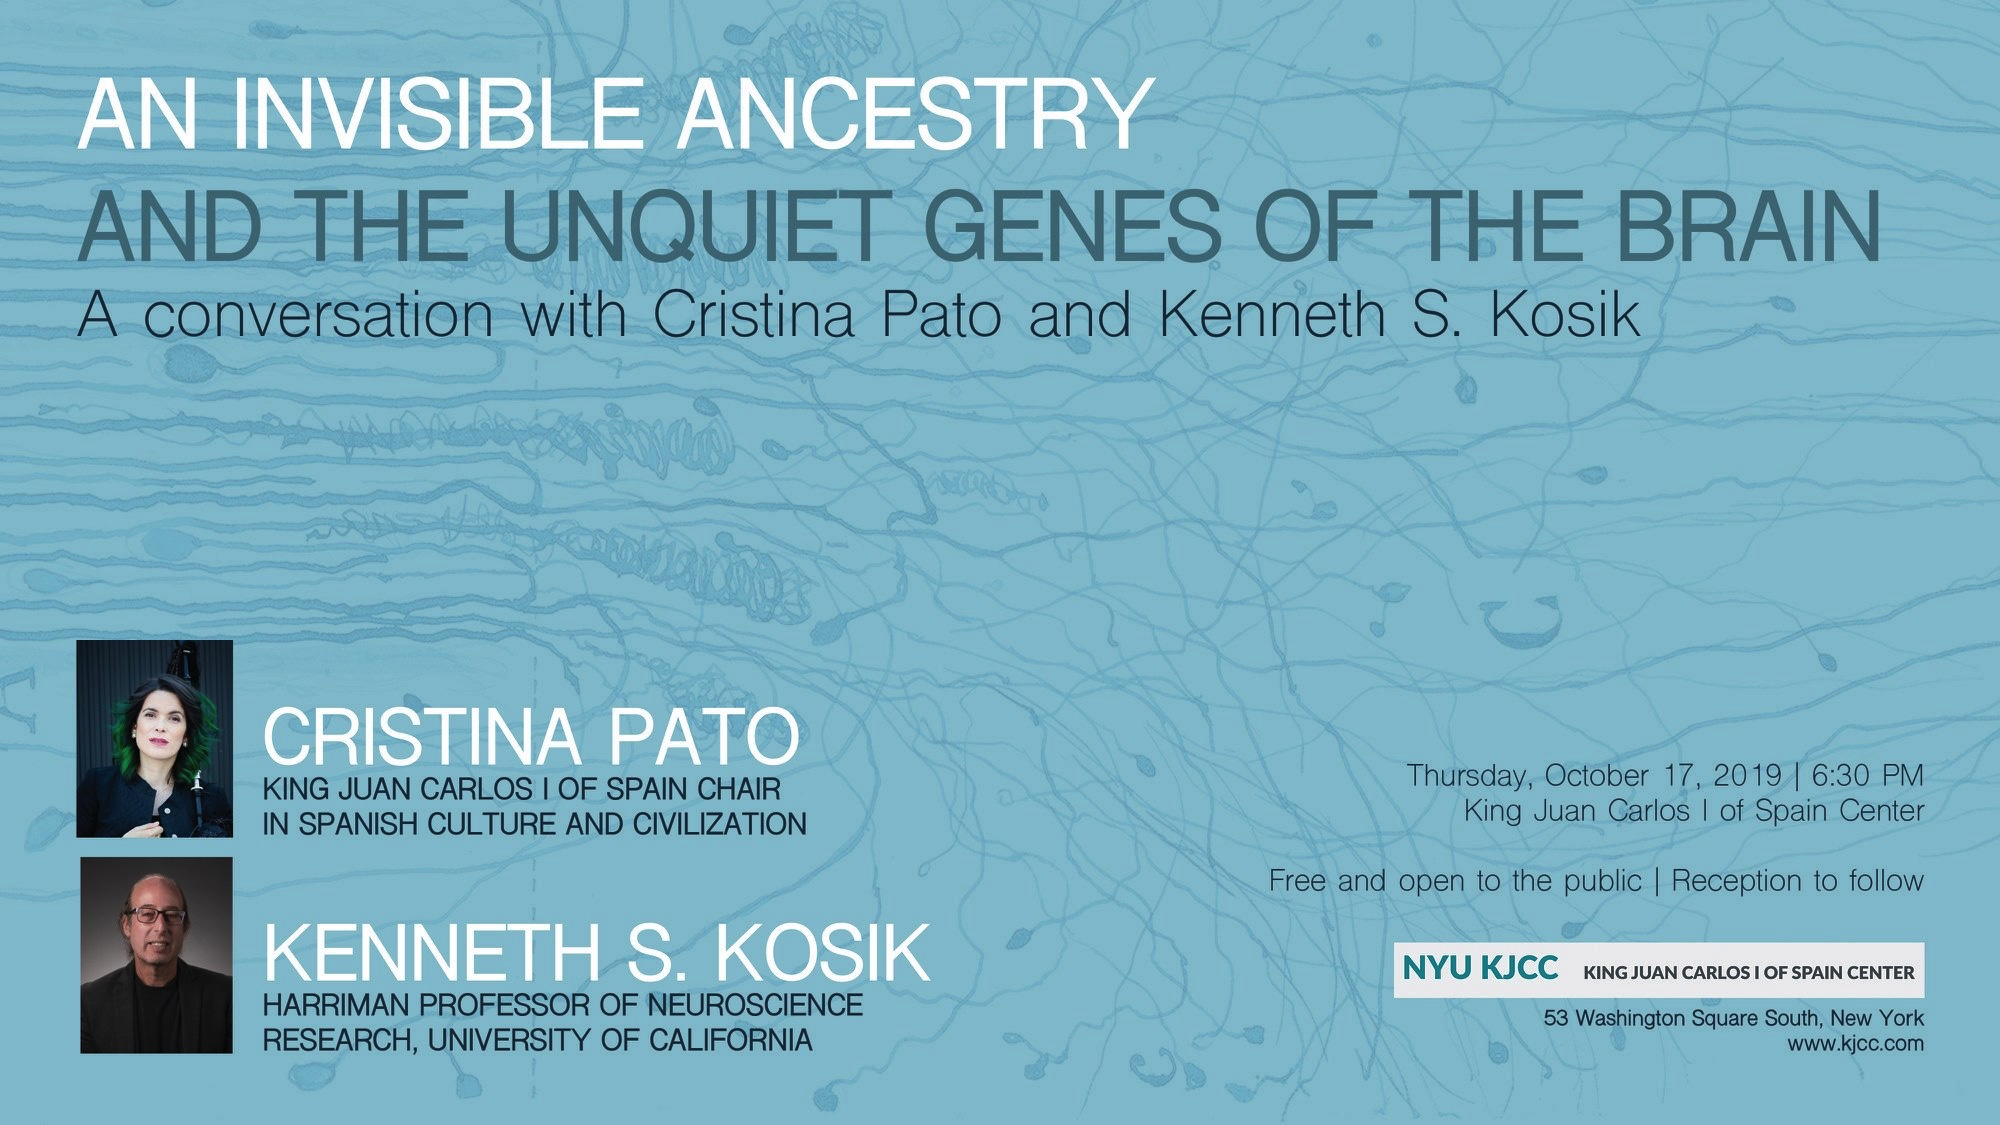 King Juan Carlos Chair CRISTINA PATO | A CONVERSATION WITH CRISTINA PATO AND KENNETH S. KOSIK: An Invisible Ancestry and the Unquiet Genes of the Brain